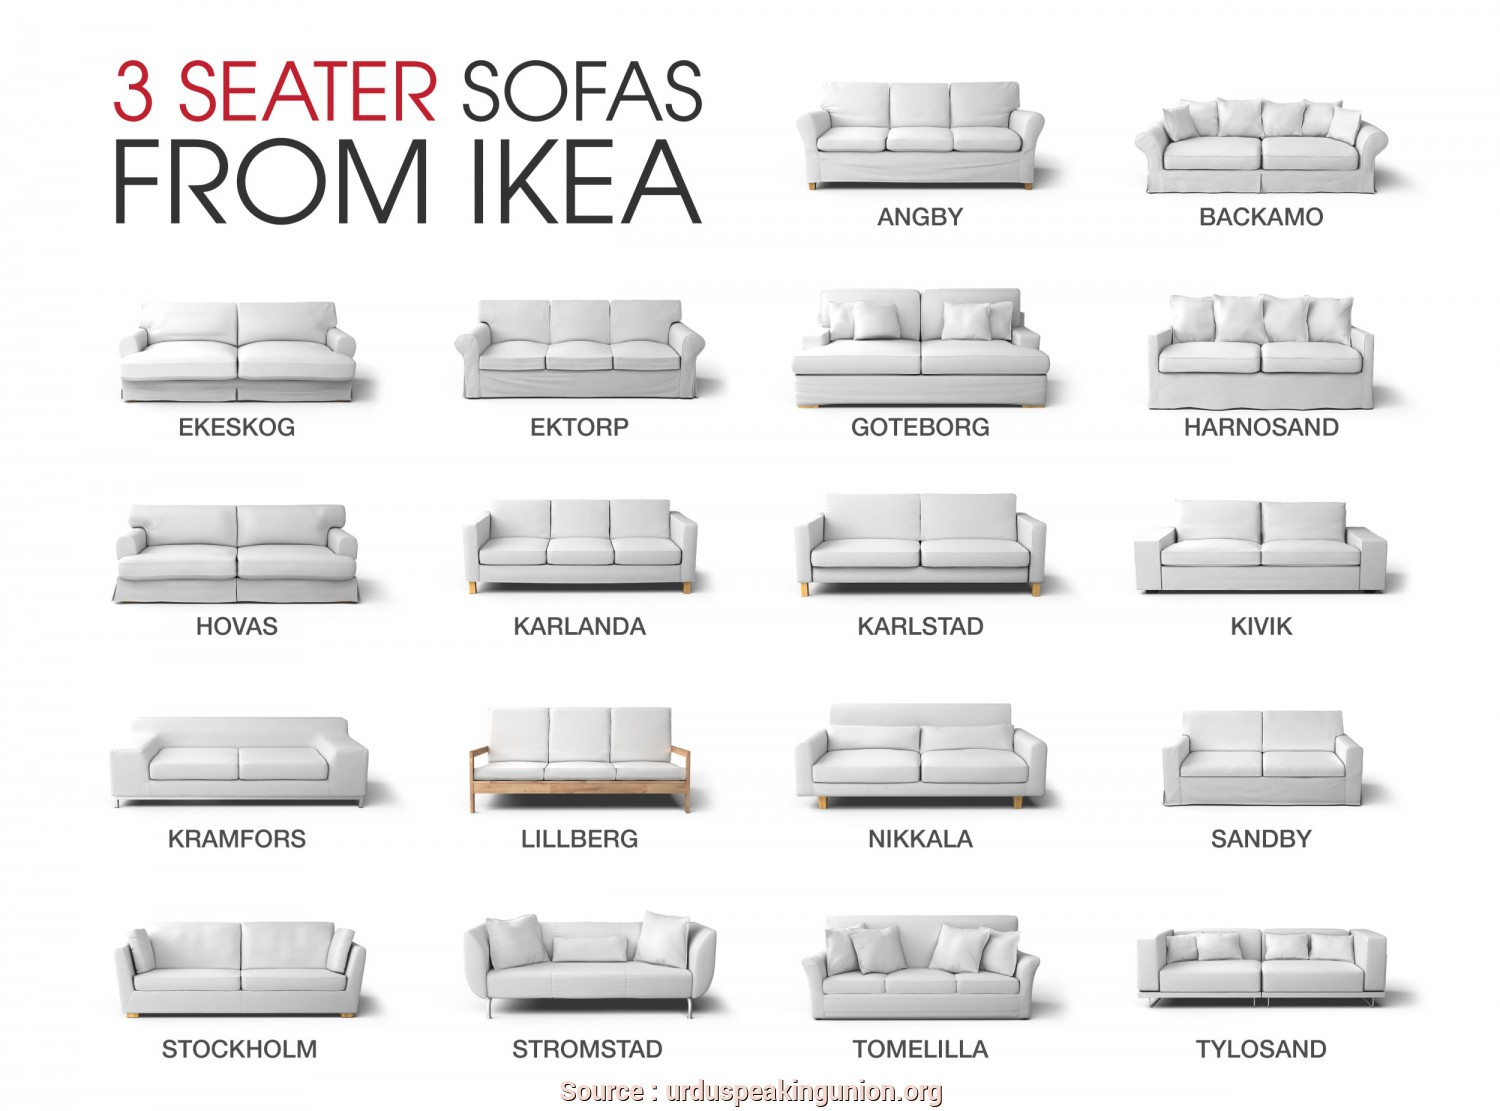 Loveable 4 Ikea Klippan 3 Seater Sofa Dimensions - Jake ...